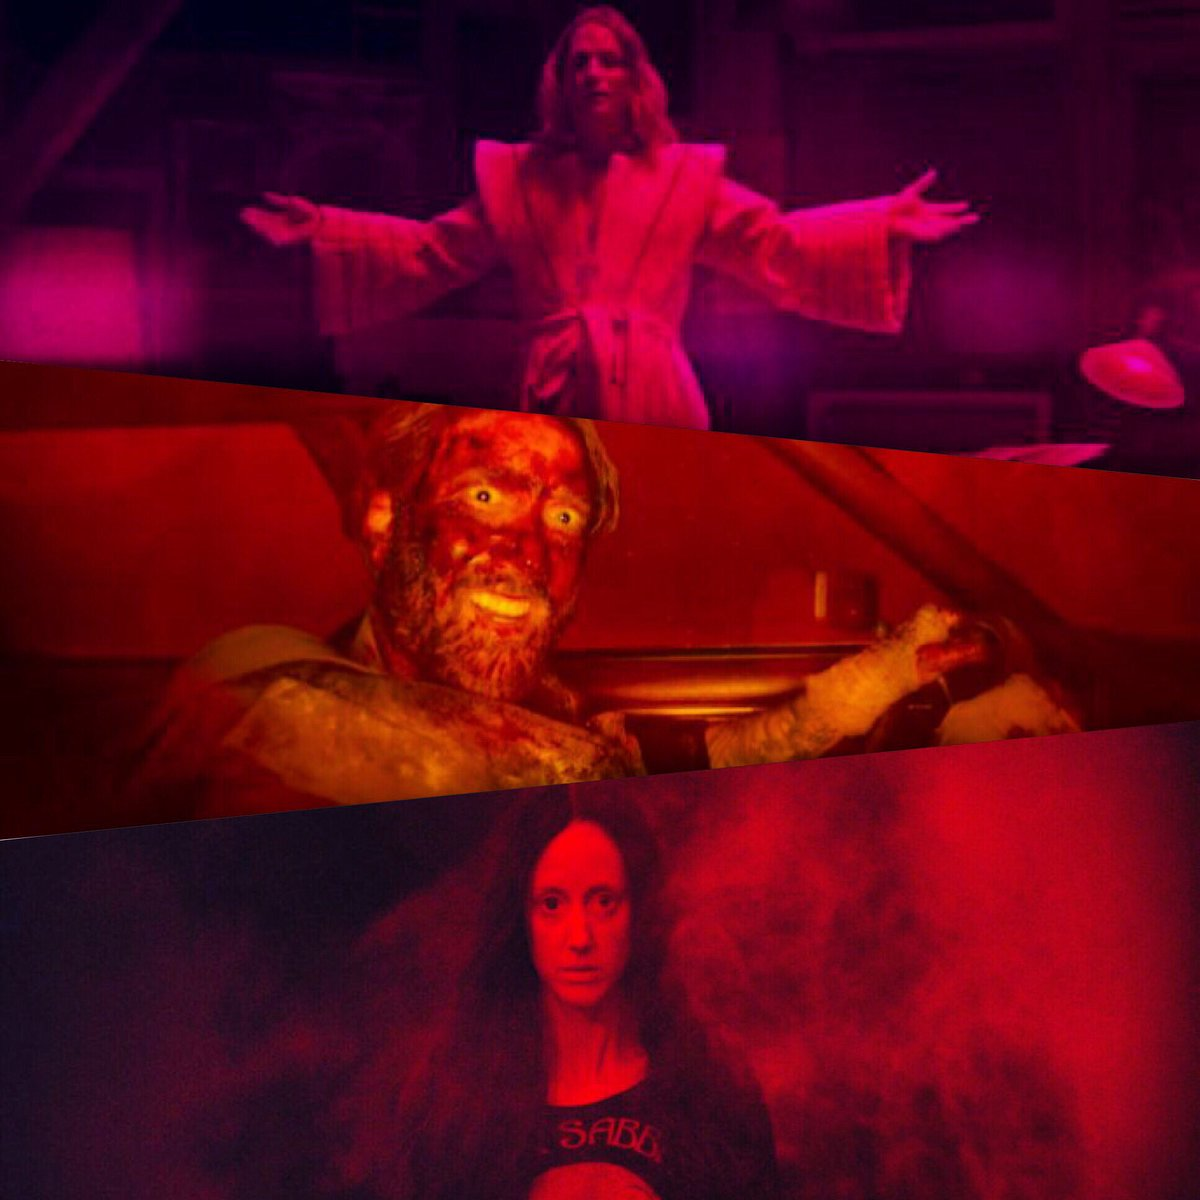 Use of color in #Mandy (2018) #horror #movies #color #cinema #horrormovies #nicholascage